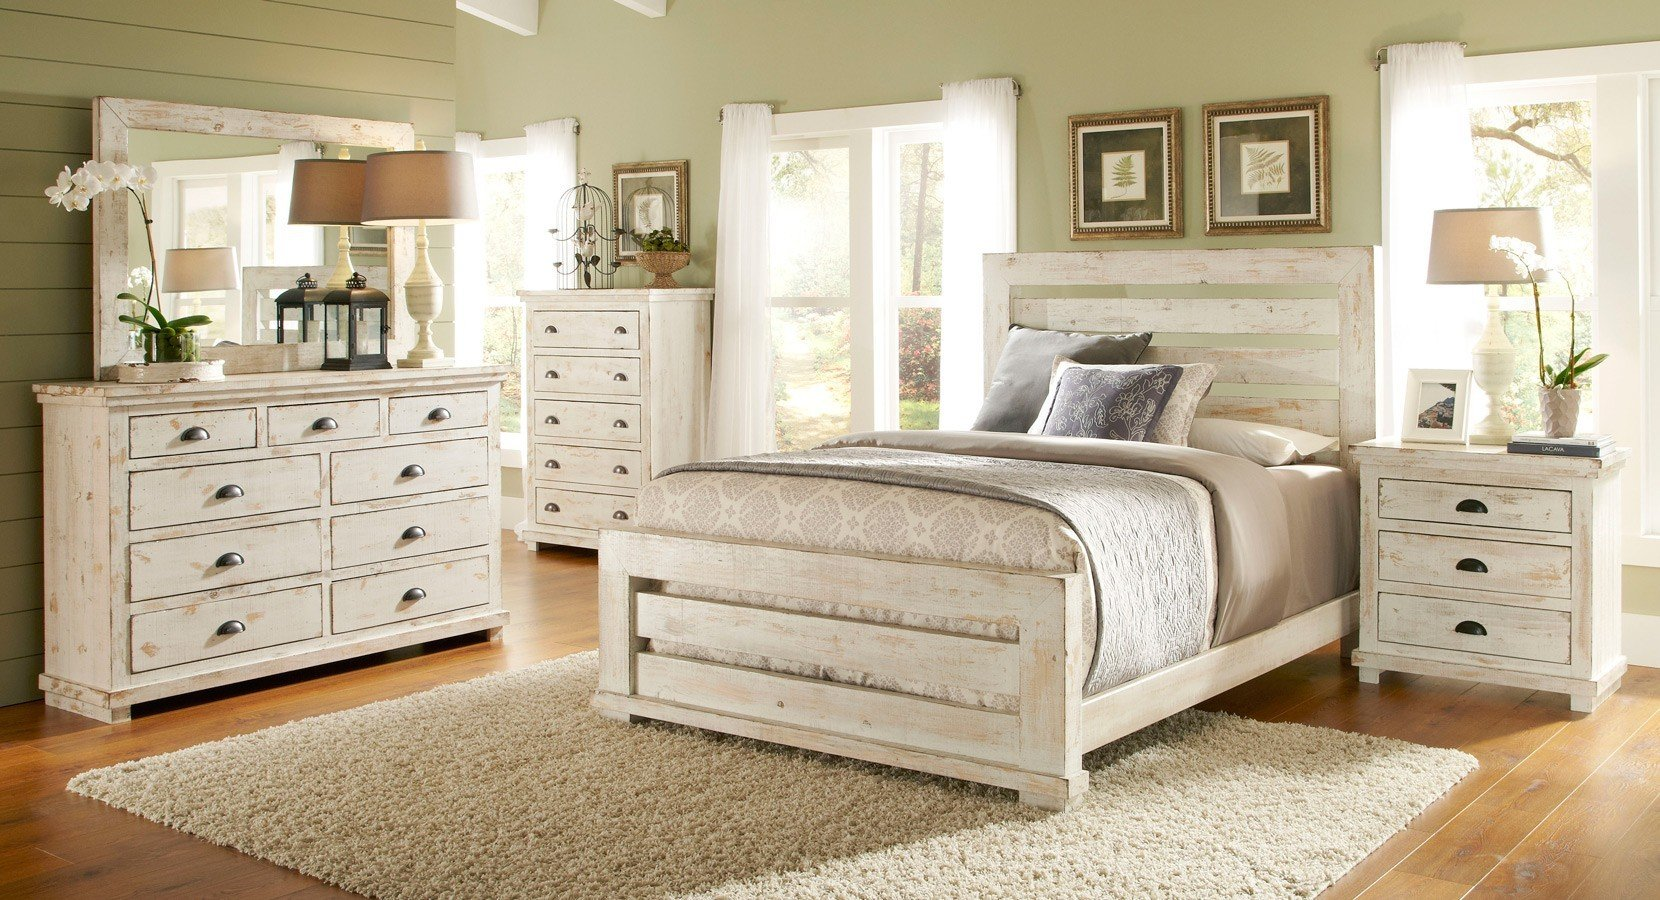 bedroom furniture white distressed photo - 7